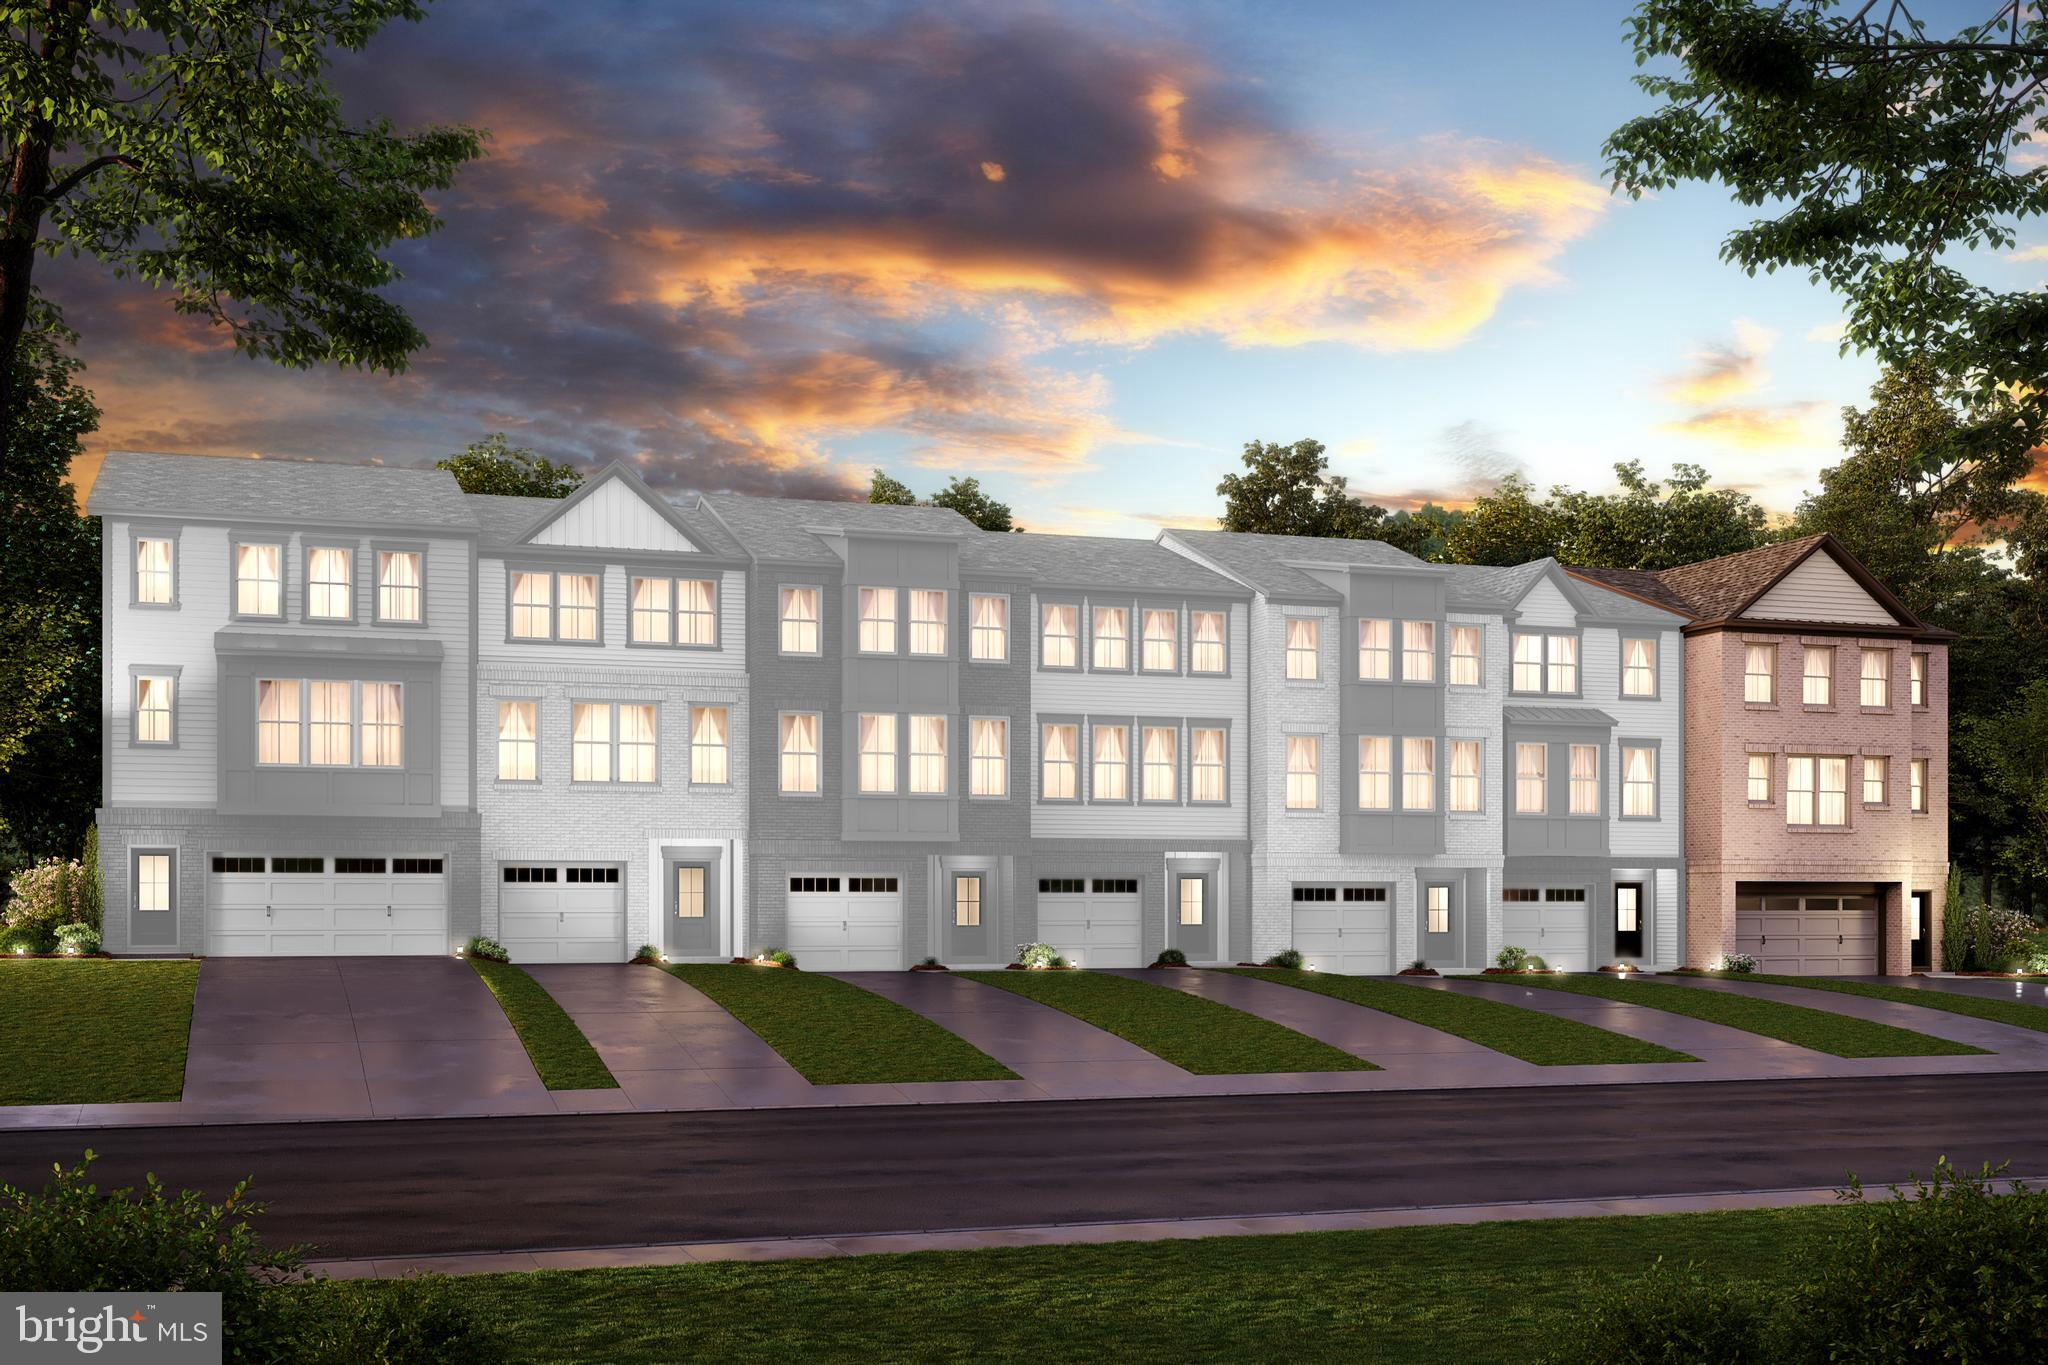 FALL DELIVERY! FIRST 3 BUYERS WILL RECEIVE AN ADDITIONAL $10,000 OFF THE PRICE AND $7,500 IN CLOSING COSTS!!! END HOME SITE! NEW BEAZER COMMUNITY FEATURING GARAGE TOWNHOMES WITHIN THE LIVELY CORE OF ALEXANDRIA IN A SECLUDED PARK! THE ALEXANDER FEATURES A SUNLIT, MODERN, AND SPACIOUSLY OPEN LAYOUT. ENTERTAIN GUESTS WHILE PREPARING GOURMET MEALS IN AN OPEN-CONCEPT KITCHEN AND GREAT ROOM. BEDROOM 4 WITH FULL BATH 3 ON LOWER LVL, COVERED PORCH, GARAGE DOOR OPENER WITH 2 REMOTES AND WIRELESS KEYPAD, BENCH WITH BEADBOARD AND CUBBIE IN MUD ROOM AREA ON THE FIRST FLOOR. THE SECOND FLOOR BOASTS WHIRLPOOL DESIGNER KITCHEN WITH STAINLESS STEEL COOK TOP AND DOUBLE WALL OVEN, 25CU.FT. STAINLESS STEEL SIDE BY SIDE FRIDGE, LVL 3 KITCHEN CABINETS IN A VARIETY OF COLOR FINISHES, LVL 3 QUARTZ OR GRANITE COUNTER, LVL 4 KITCHEN BACKSPLASH, UPGRADE LAMINATE FLOORING ON THE ENTIRE MAIN LVL, COSMOS FIREPLACE WITH WOOD MANTLE IN GREAT ROOM, OPEN SHELVES IN GREAT ROOM, OAK STAIRS, VERANDA, AND POCKET OFFICE. MASTER BEDROOM IS LOCATED IN THE BACK OF THE HOME FOR BEST EXTERIOR VIEWS AND NATURAL LIGHT. SPACIOUS SECONDARY BEDROOMS WITH LARGE CLOSETS ARE IDEAL FOR GUESTS. LARGE FORMAT 12X24 TILE IN MASTER BATH, DELUXE TUB IN MASTER BATH, SPORTS SHOWER WITH FRAMELESS SHOWER ENCLOSURE IN MASTER BATH, CERAMIC TILE 12X12 ON BATH 2 & 3 FLOOR, UPSTAIRS SECONDARY BEDROOMS W/ WALK-IN CLOSETS. USE THE FINISHED RECREATION ROOM FOR STORAGE, ADDITIONAL LIVING SPACE OR EXTRA FAMILY TIME.PRICES/TERMS SUBJ TO CHANGE. FINAL PRICE DEPENDENT ON OPTIONS. PHOTOS MAY BE OF SIMILAR HOME